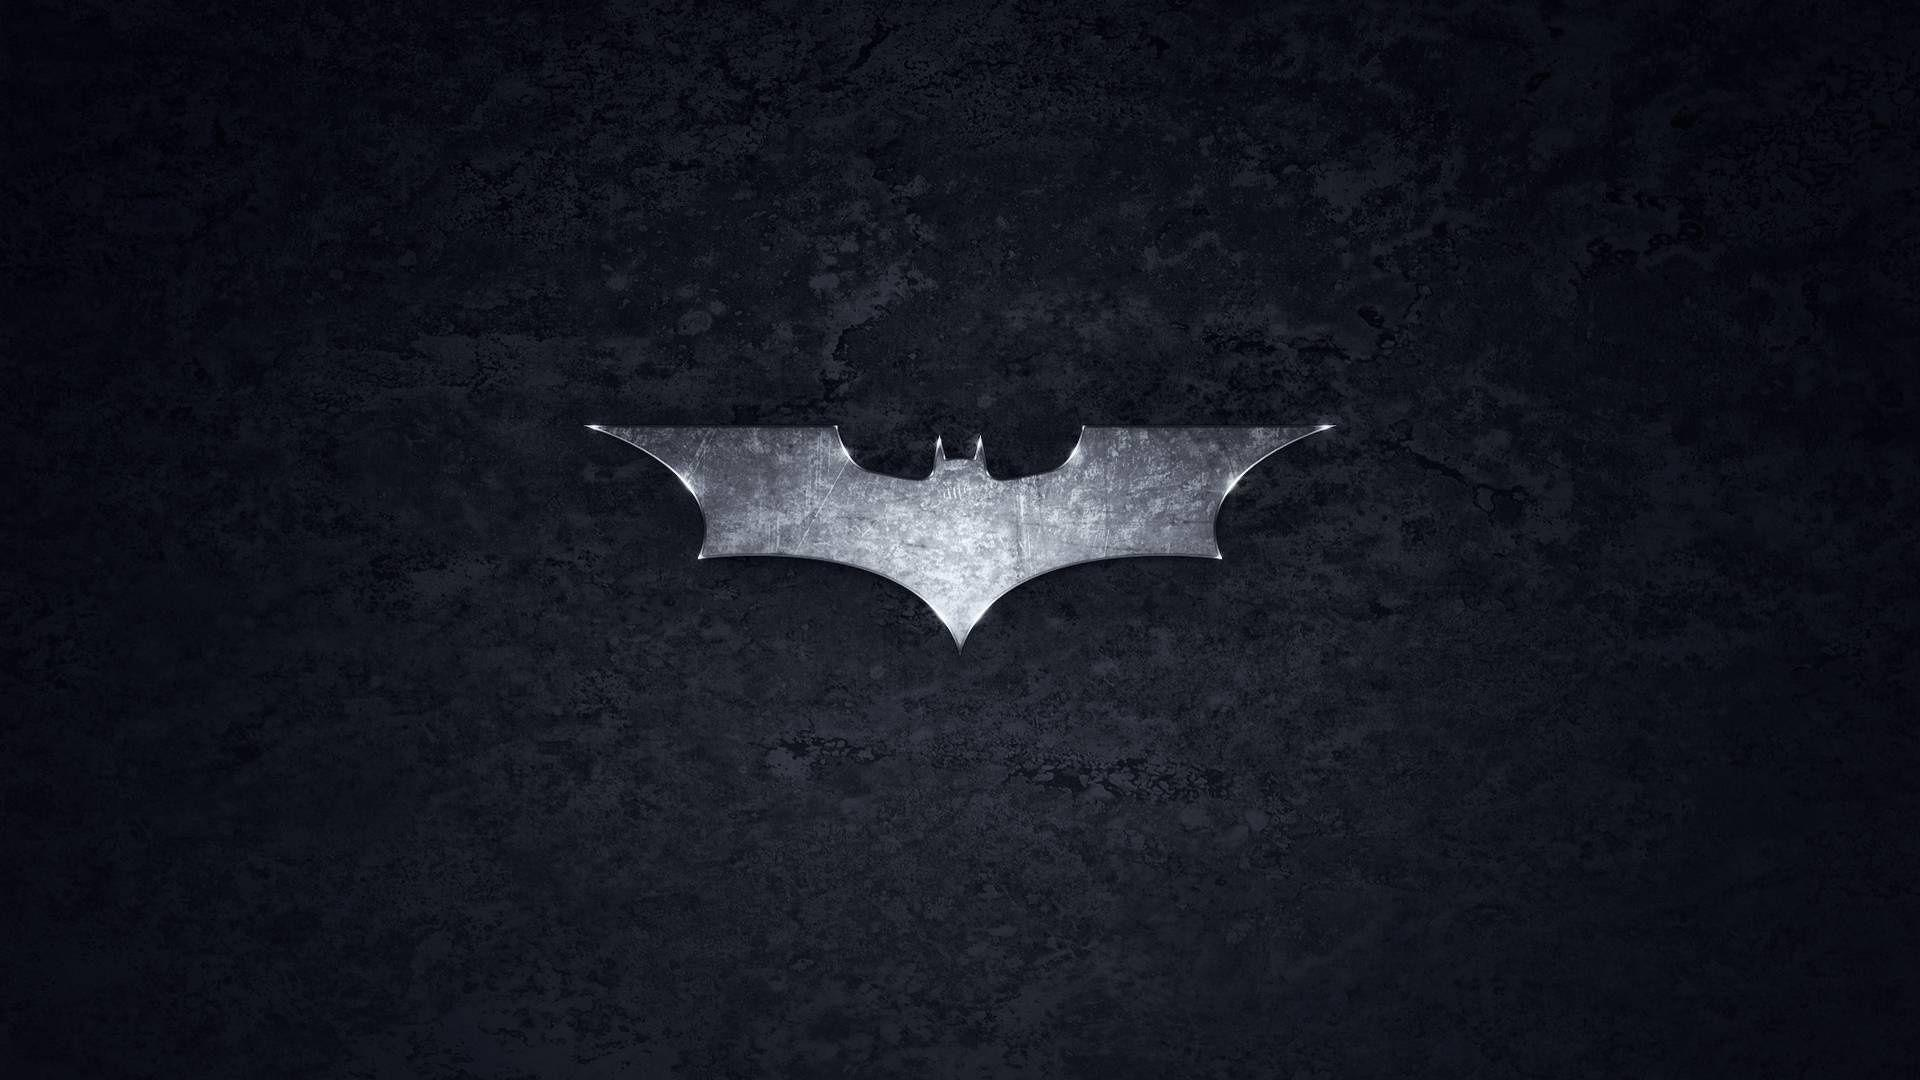 Batman Black Logo 1080p HD Wallpaper | Download APK Here